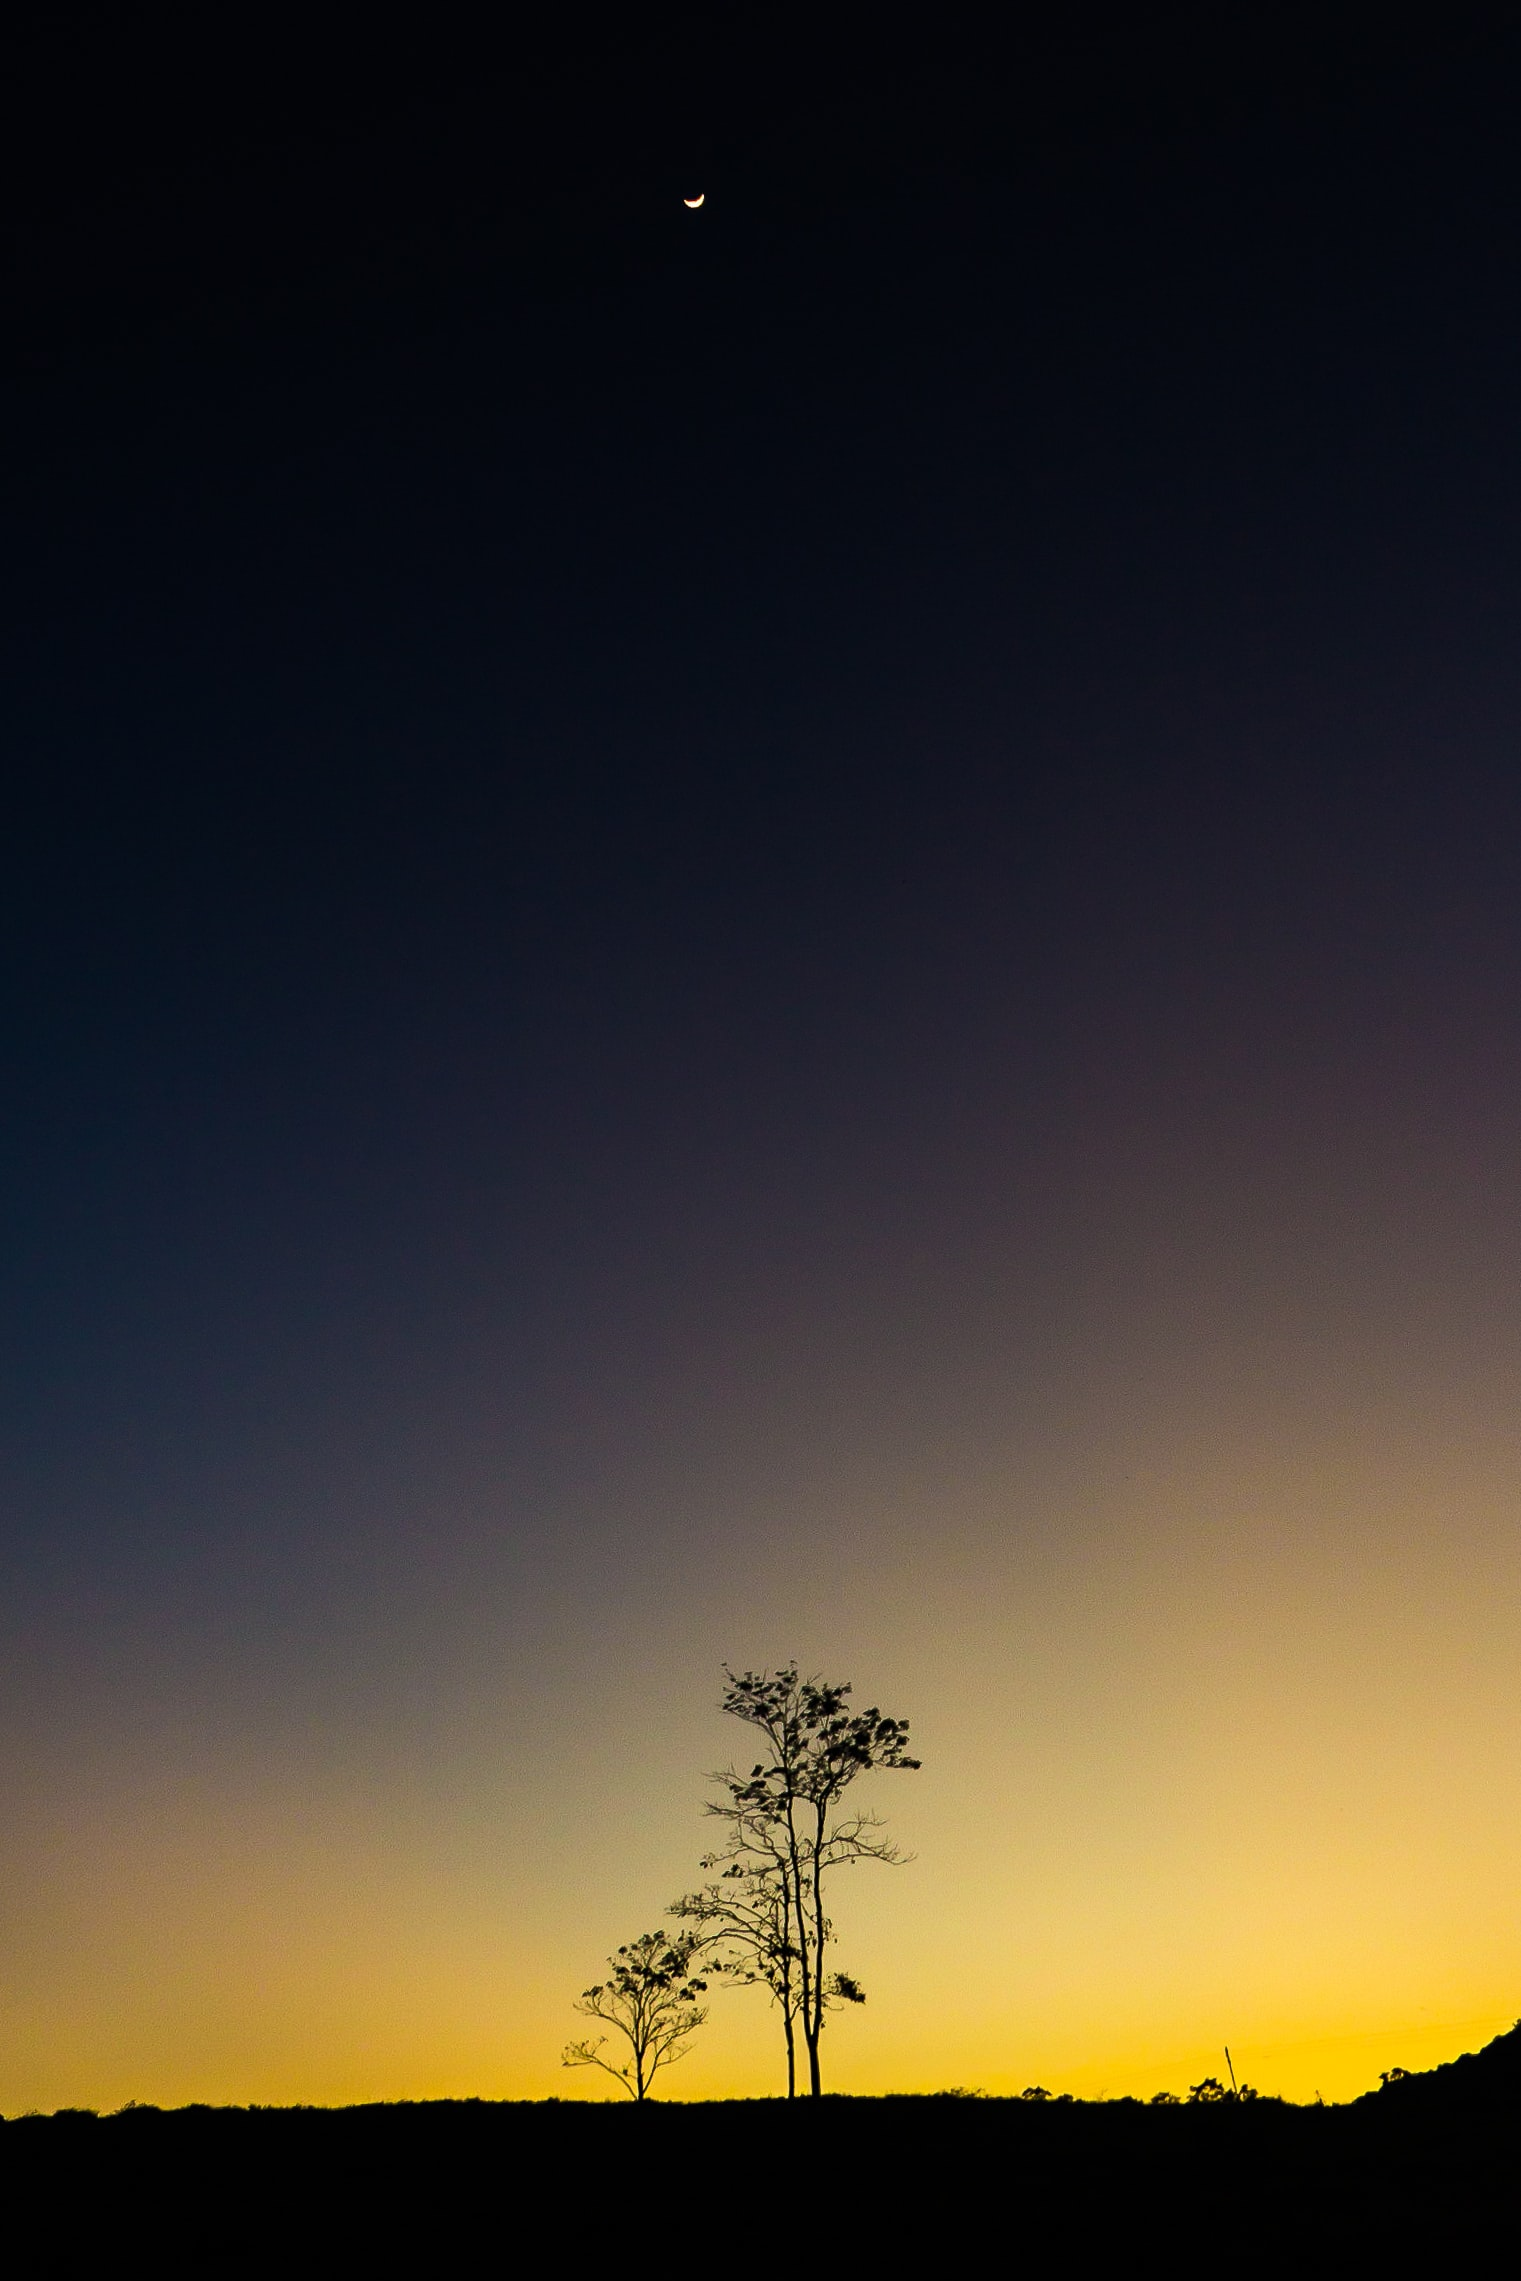 silhouette photography of tree during nighttime